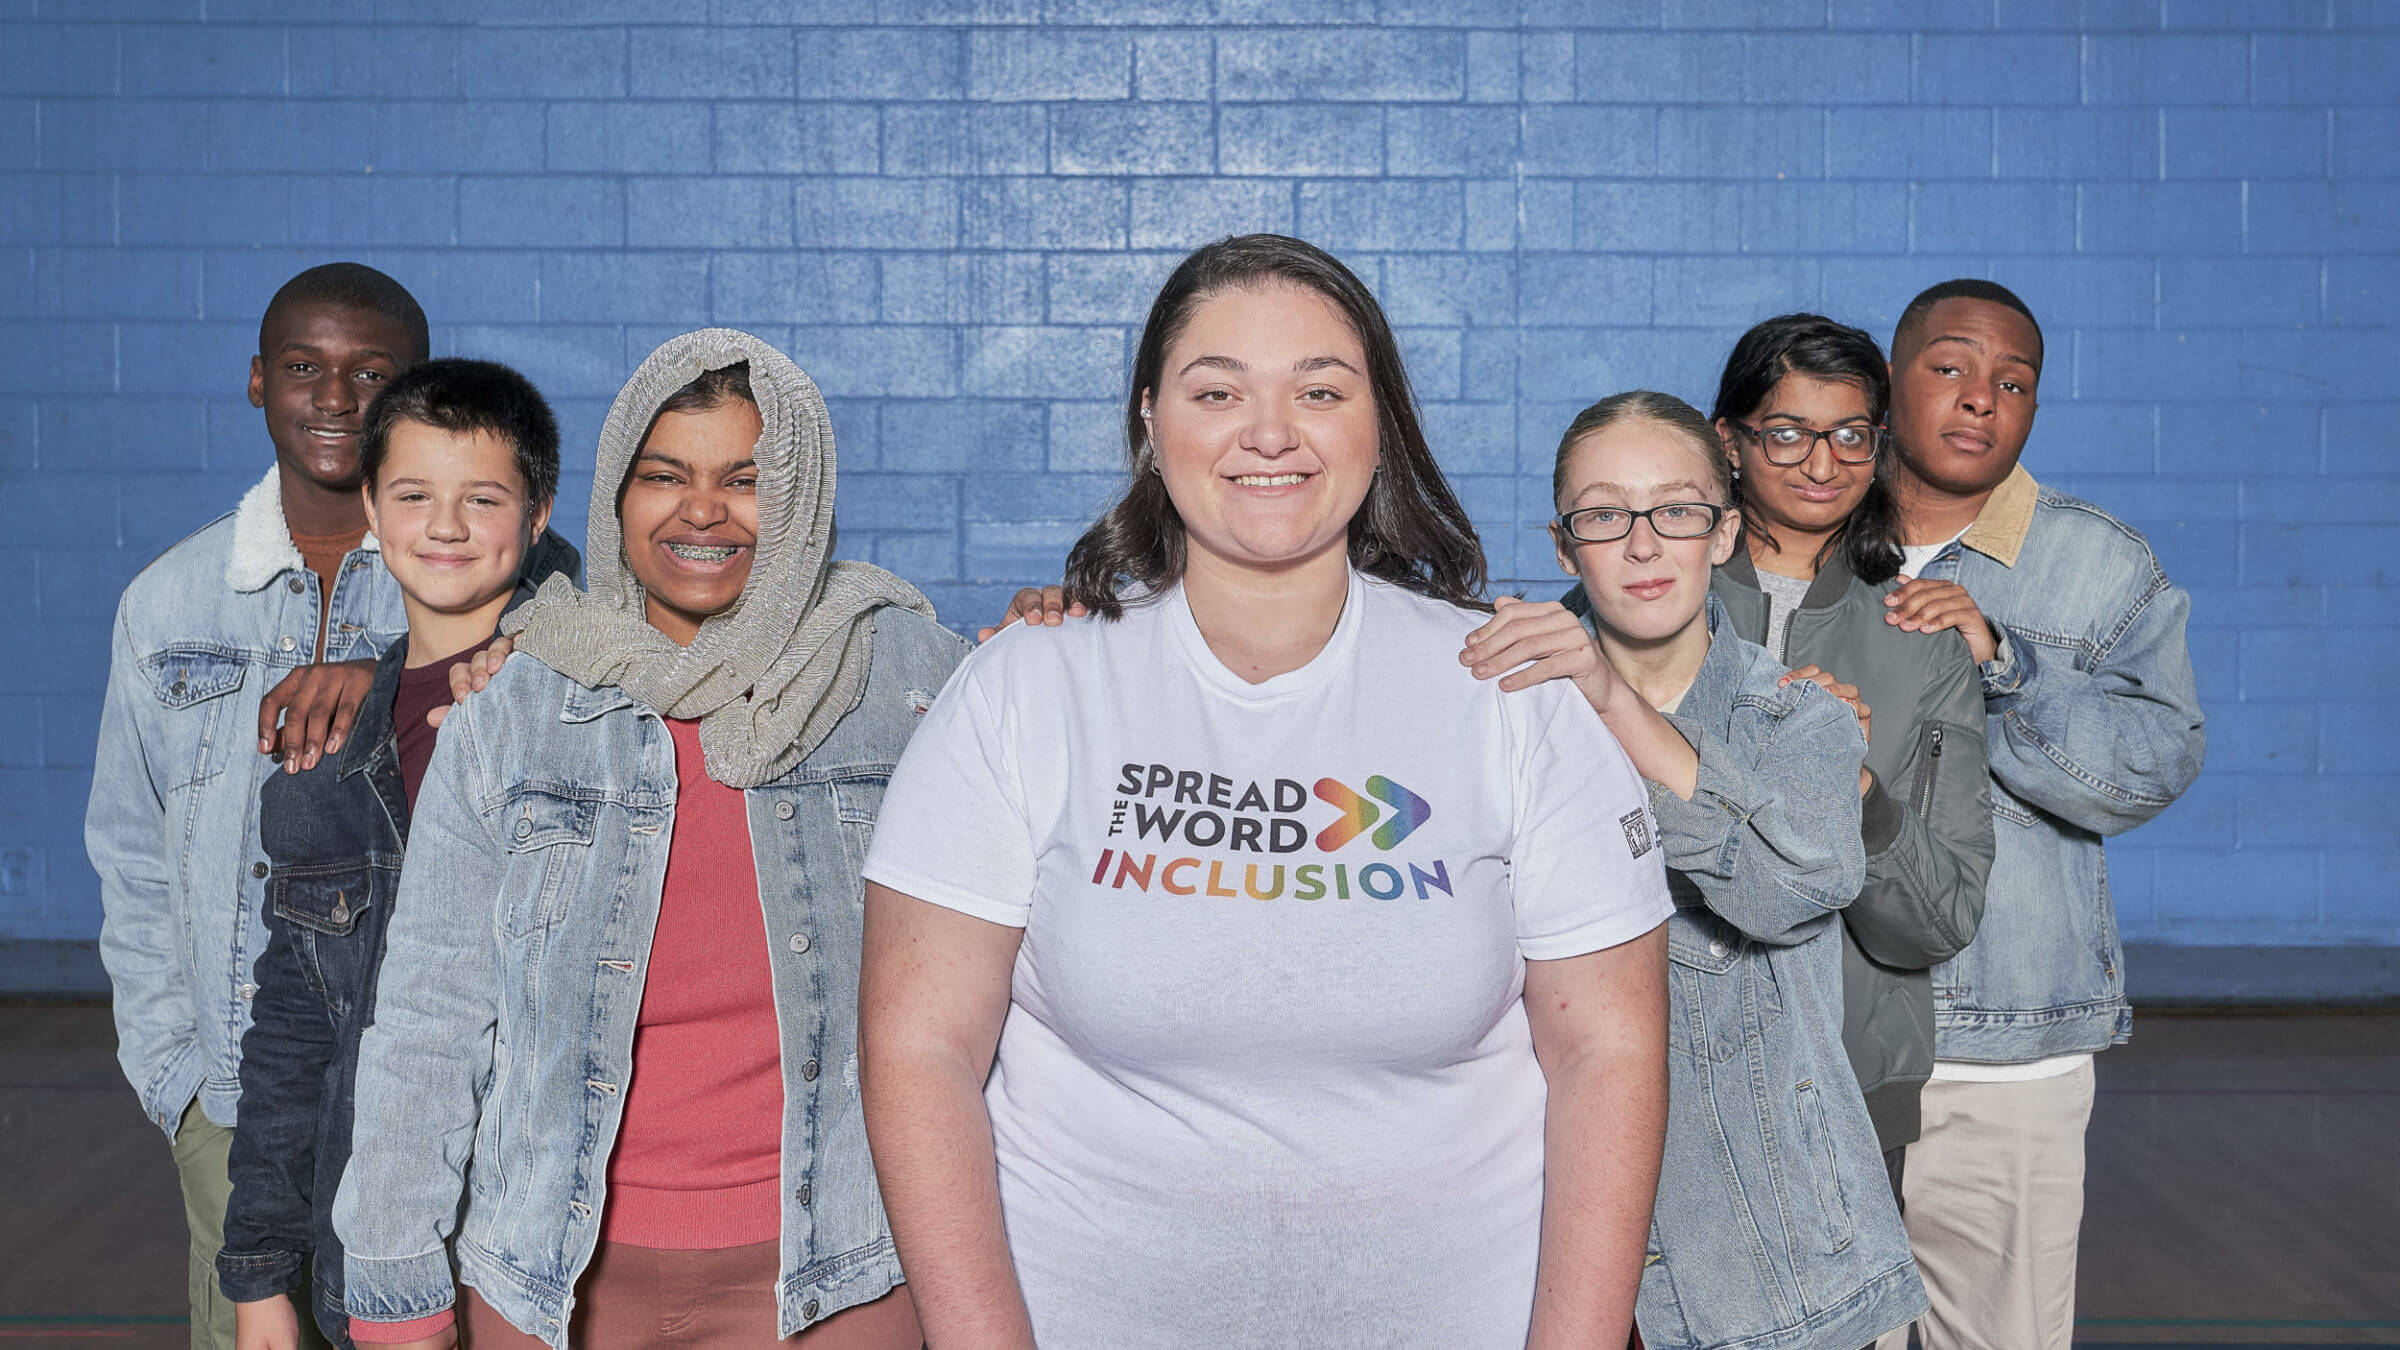 Group of students posing around one student wearing a Spread the Word shirt.